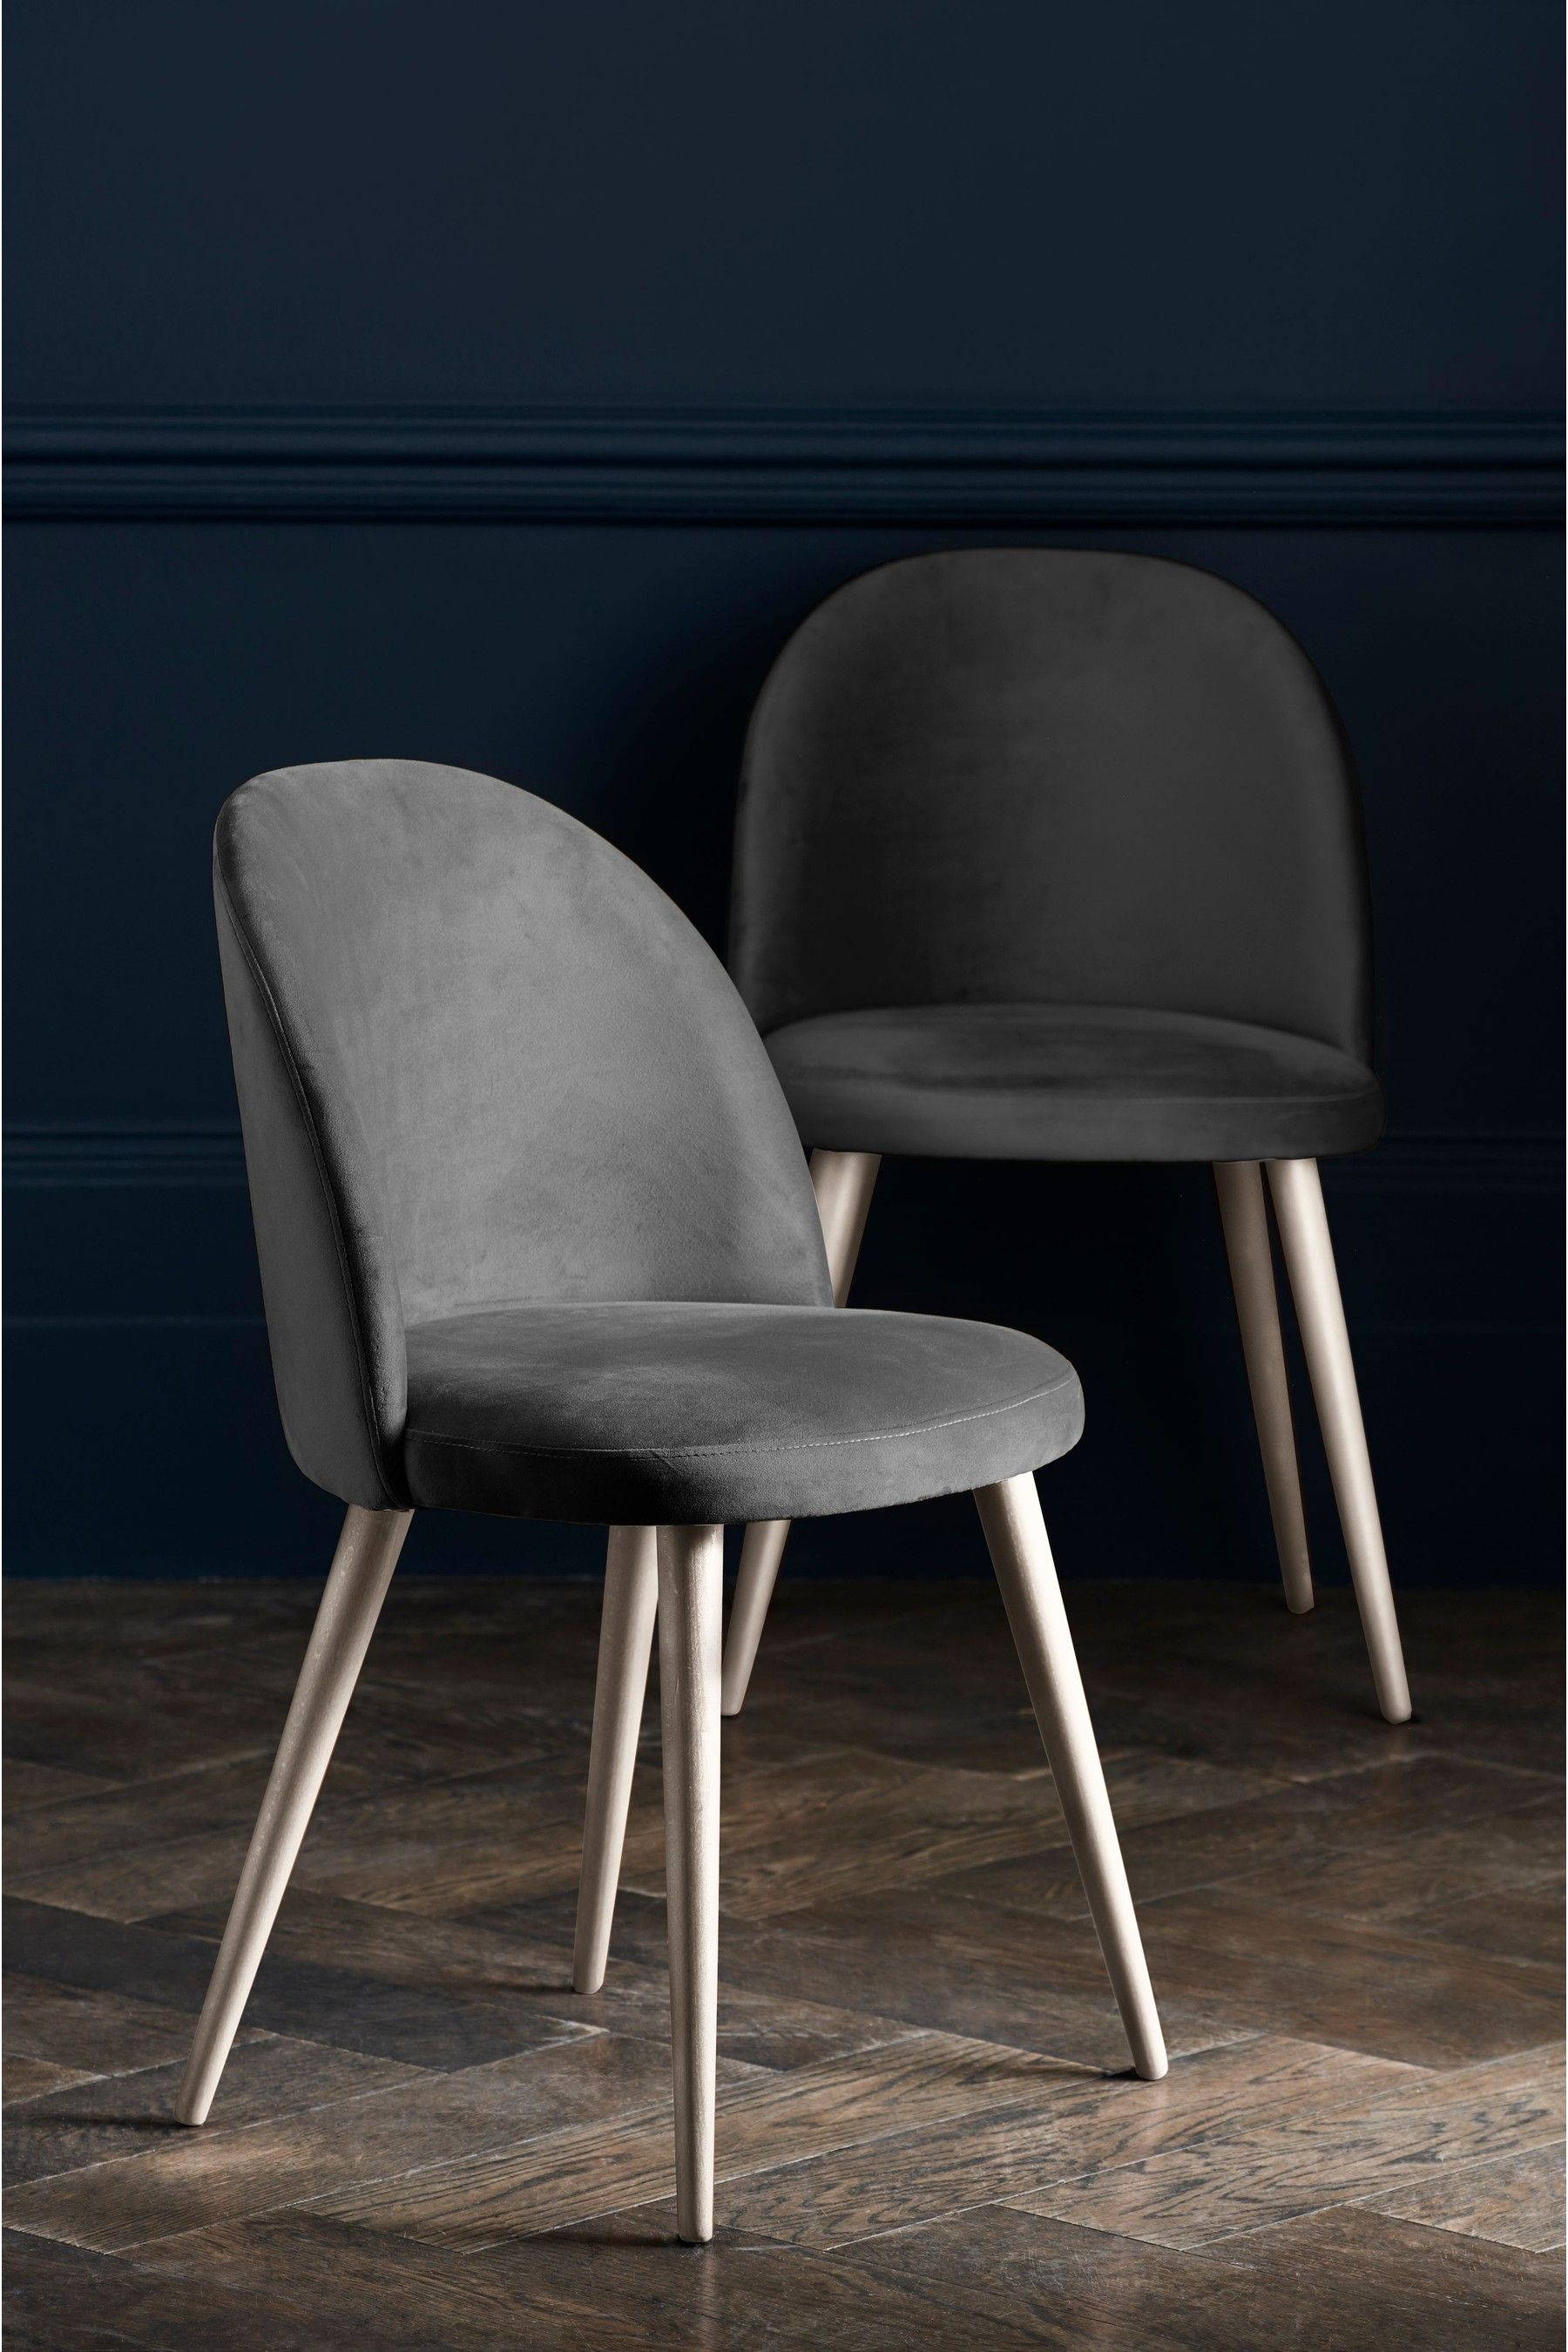 Next Set of 9 Zola Dining Chairs With Light Legs - Grey in 9090